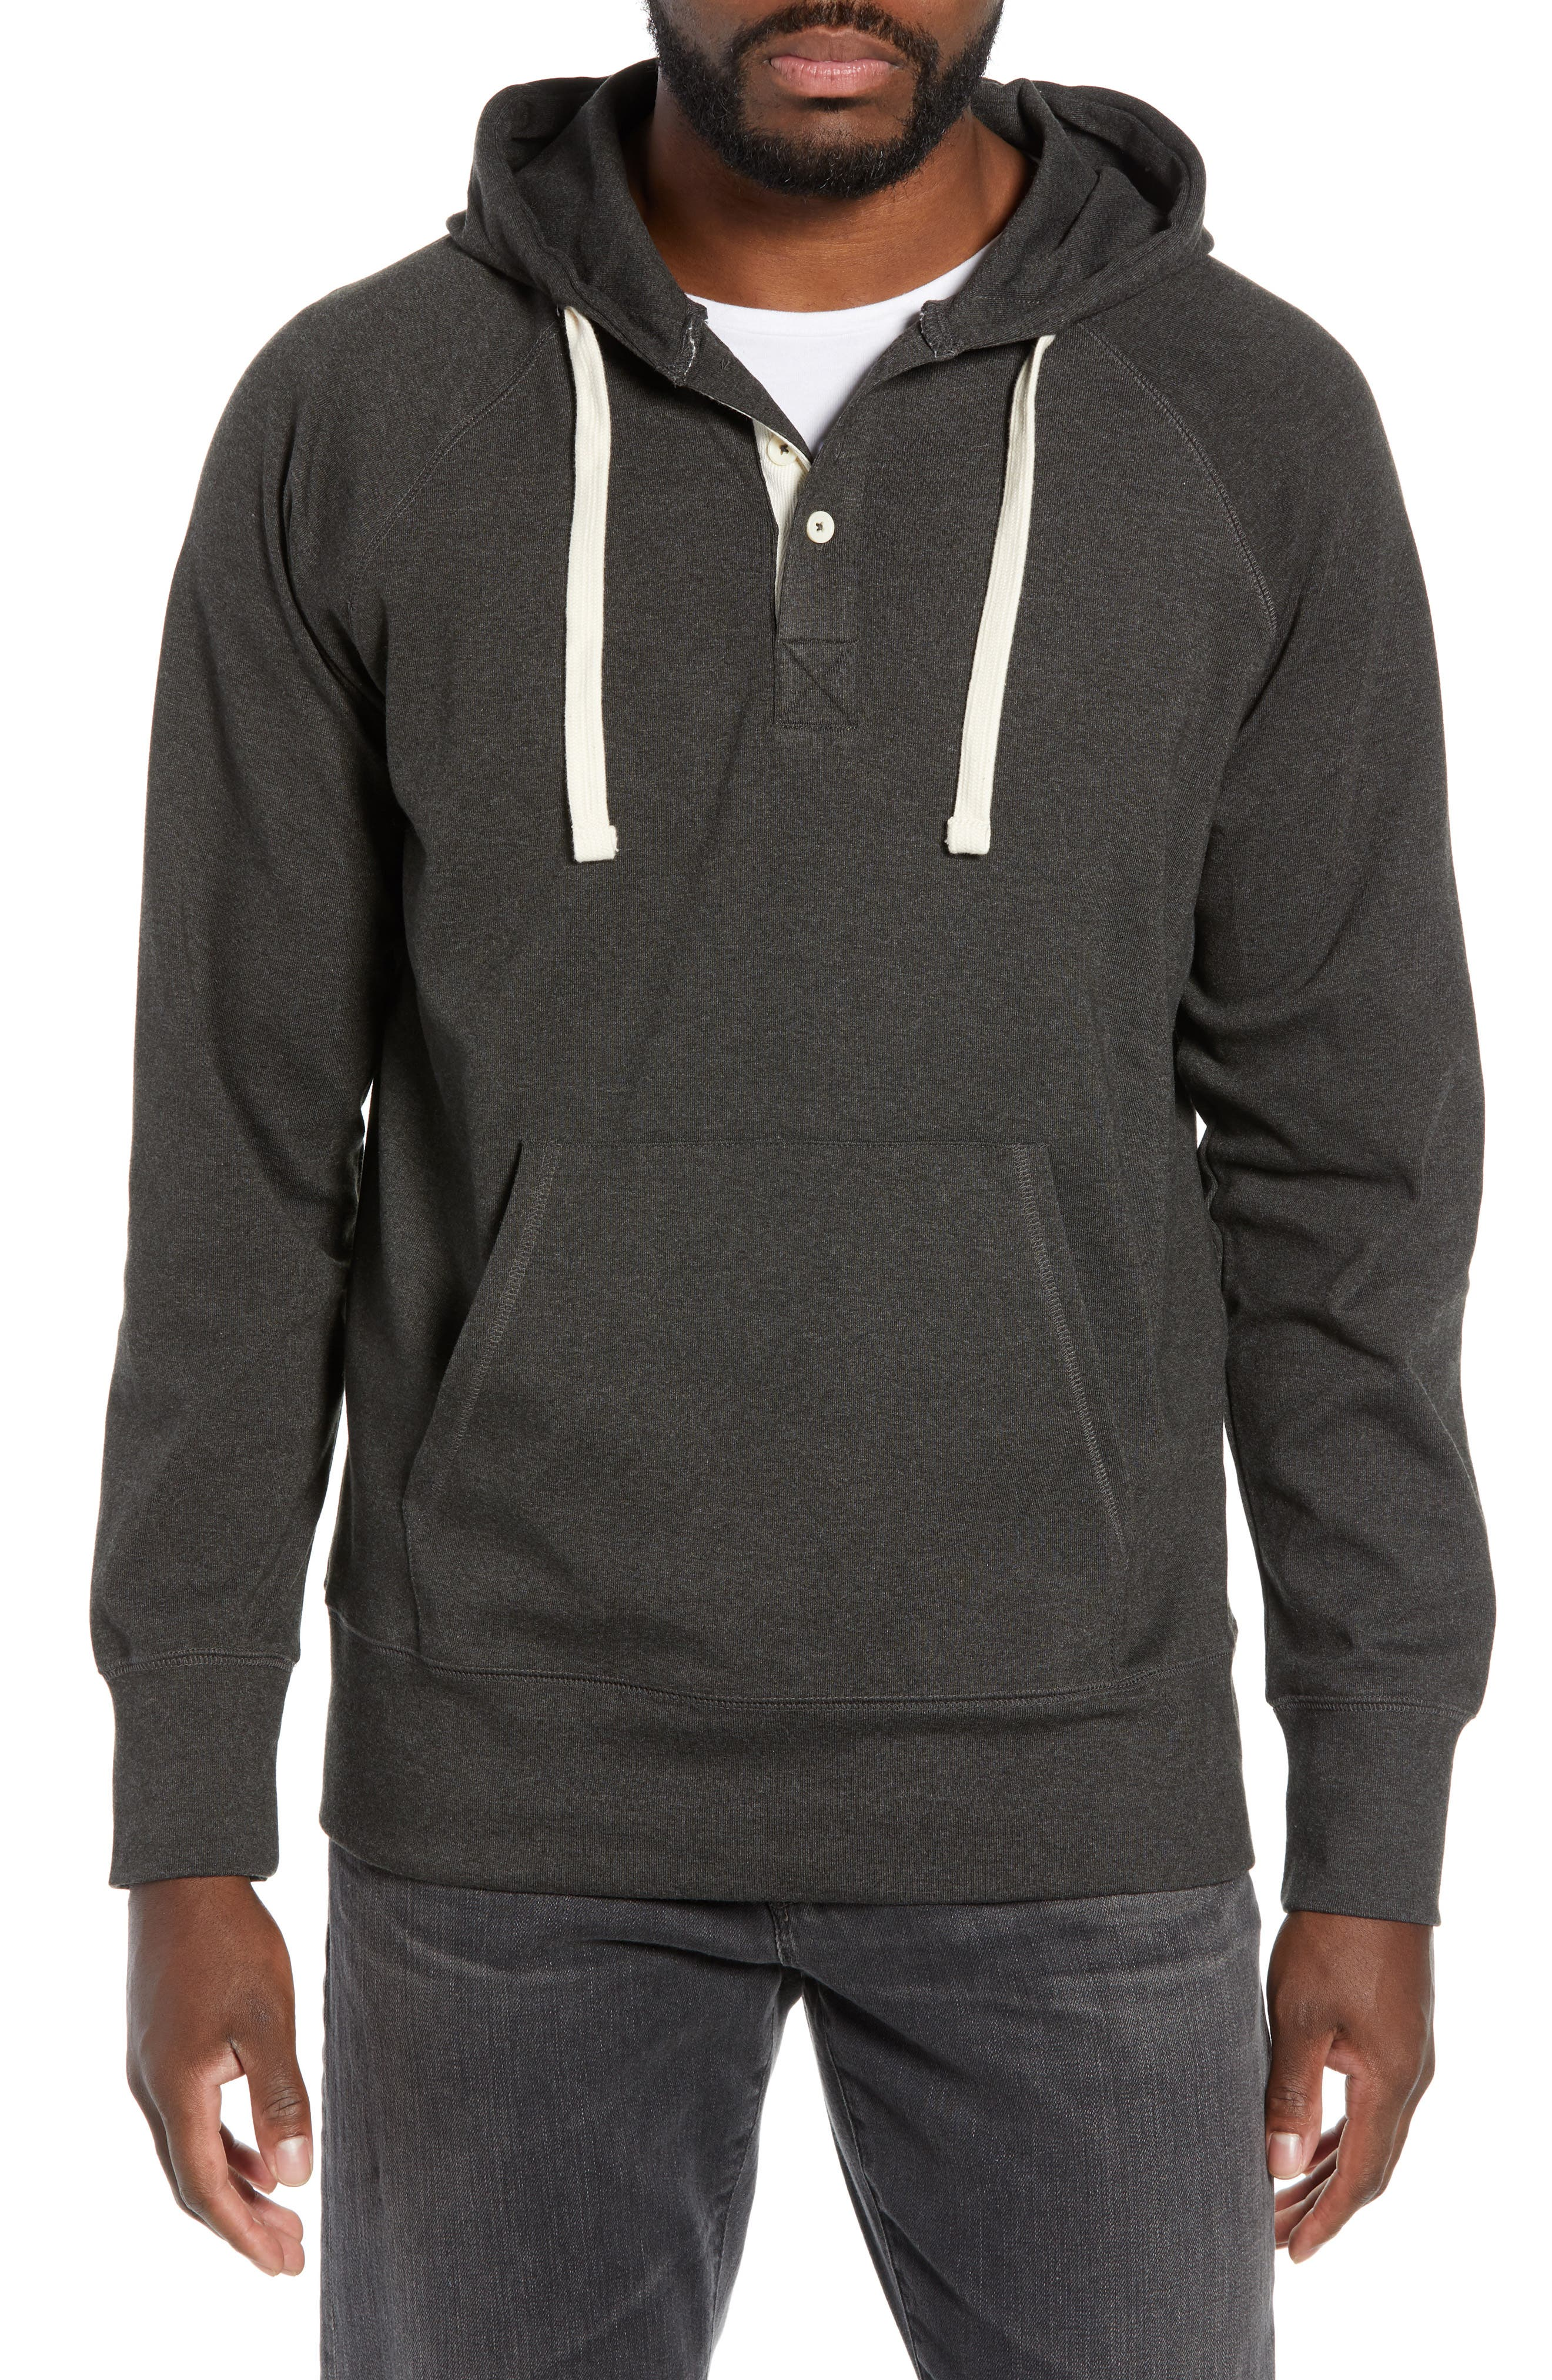 Puremeso Pullover Hoodie,                             Main thumbnail 1, color,                             CHARCOAL